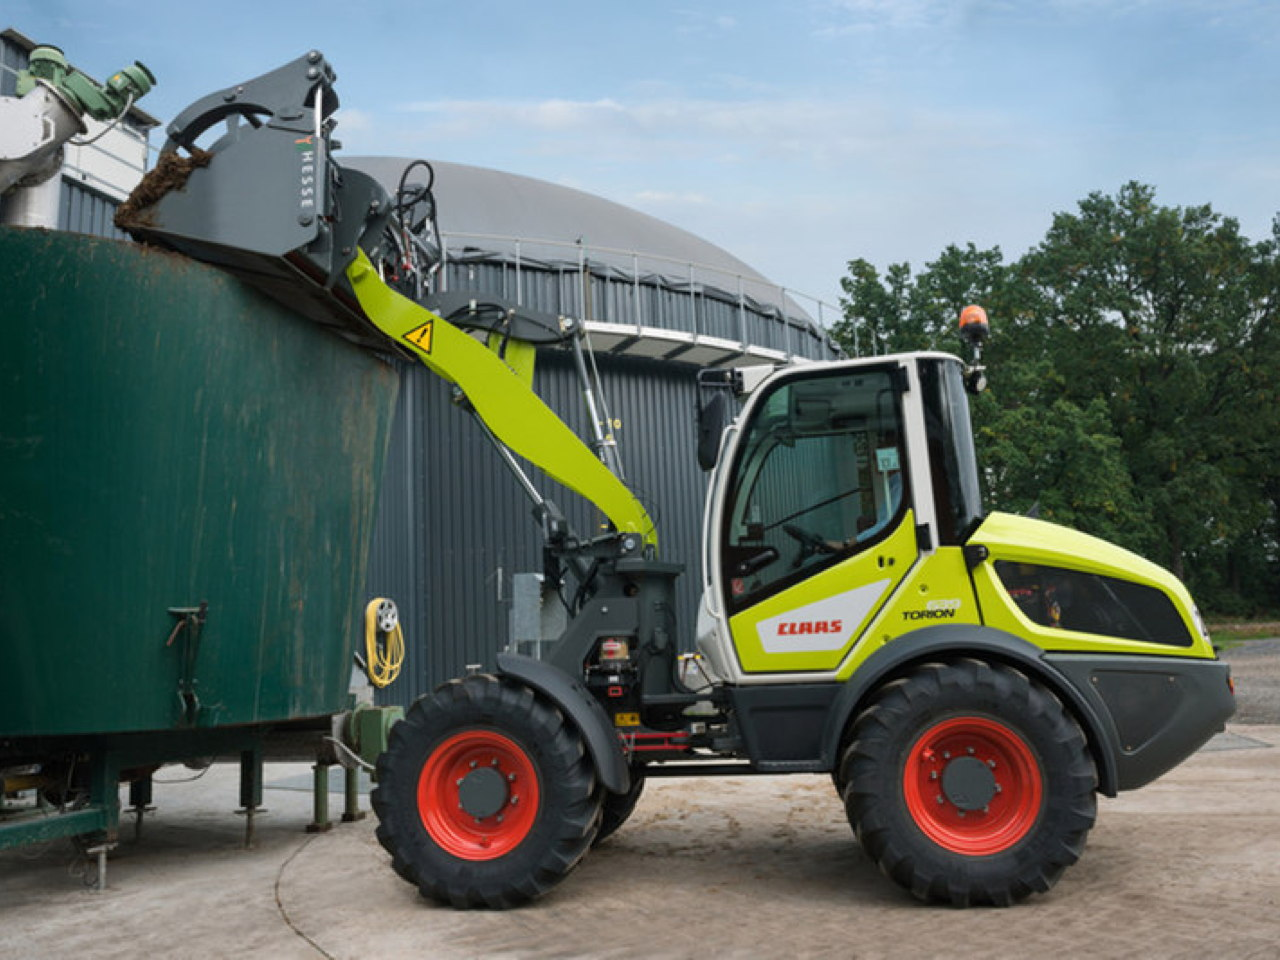 Claas Torion 639-535 Torion 535